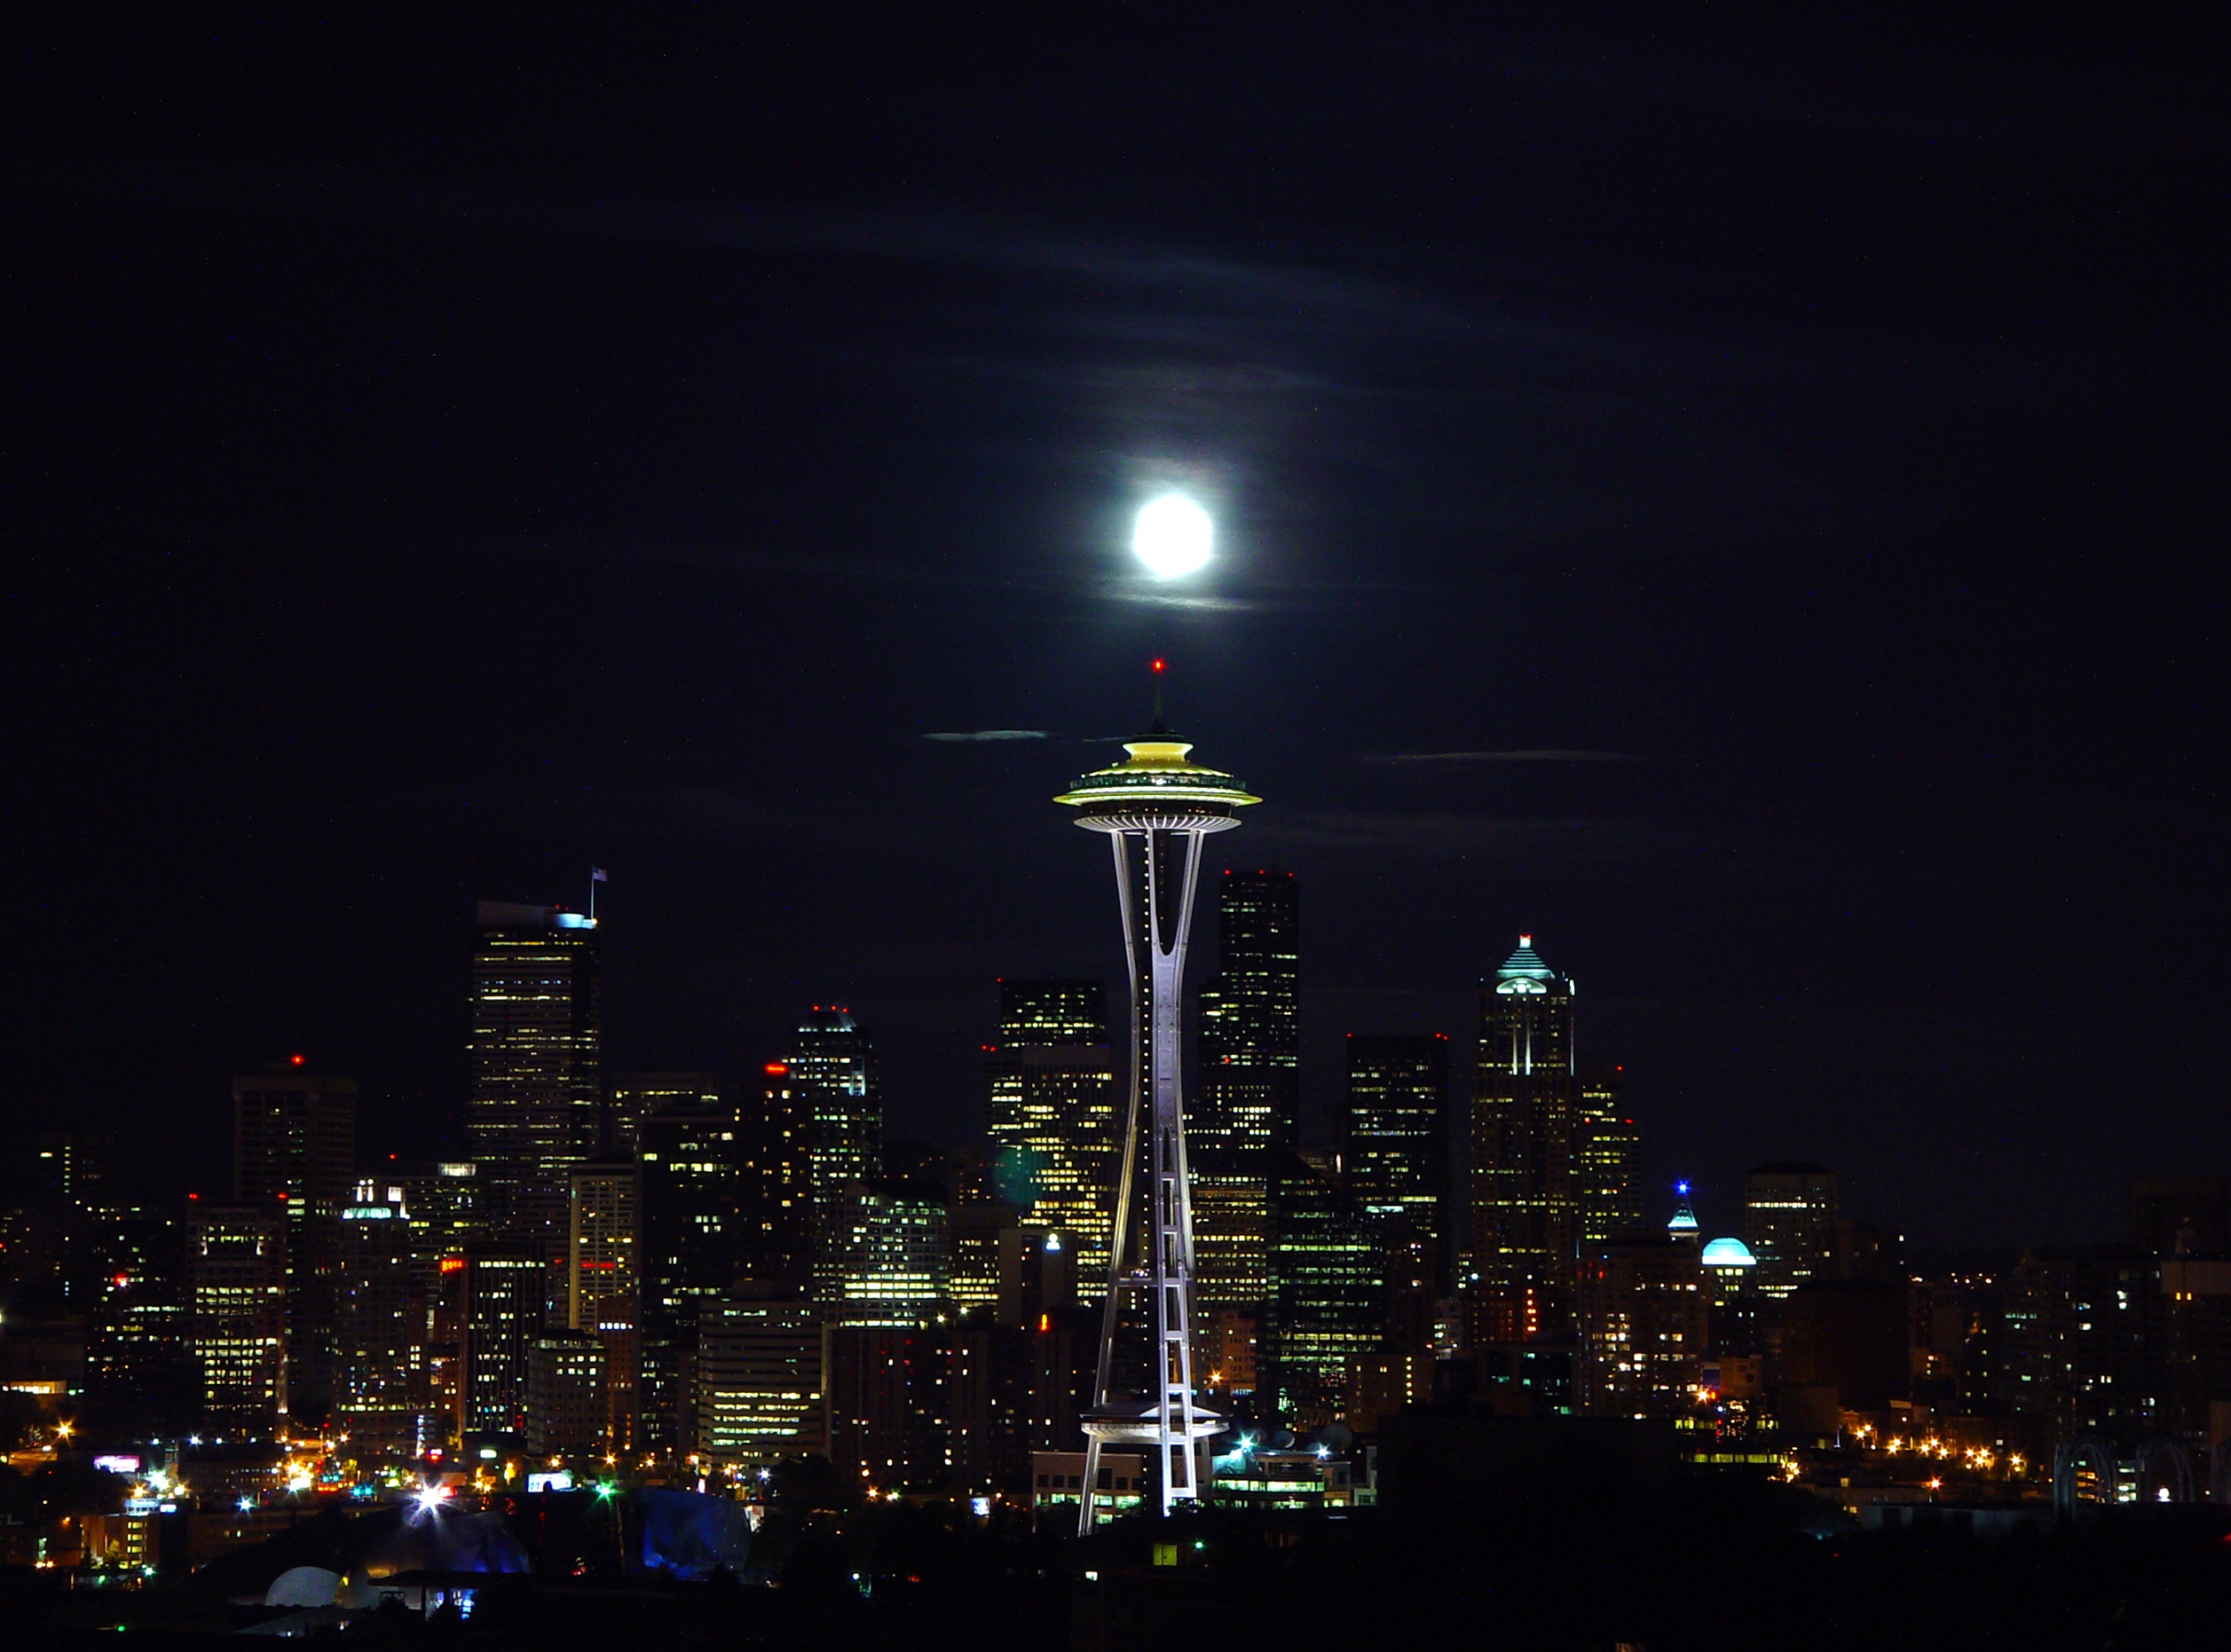 Description Seattle skyline nightjpg 2514x1862